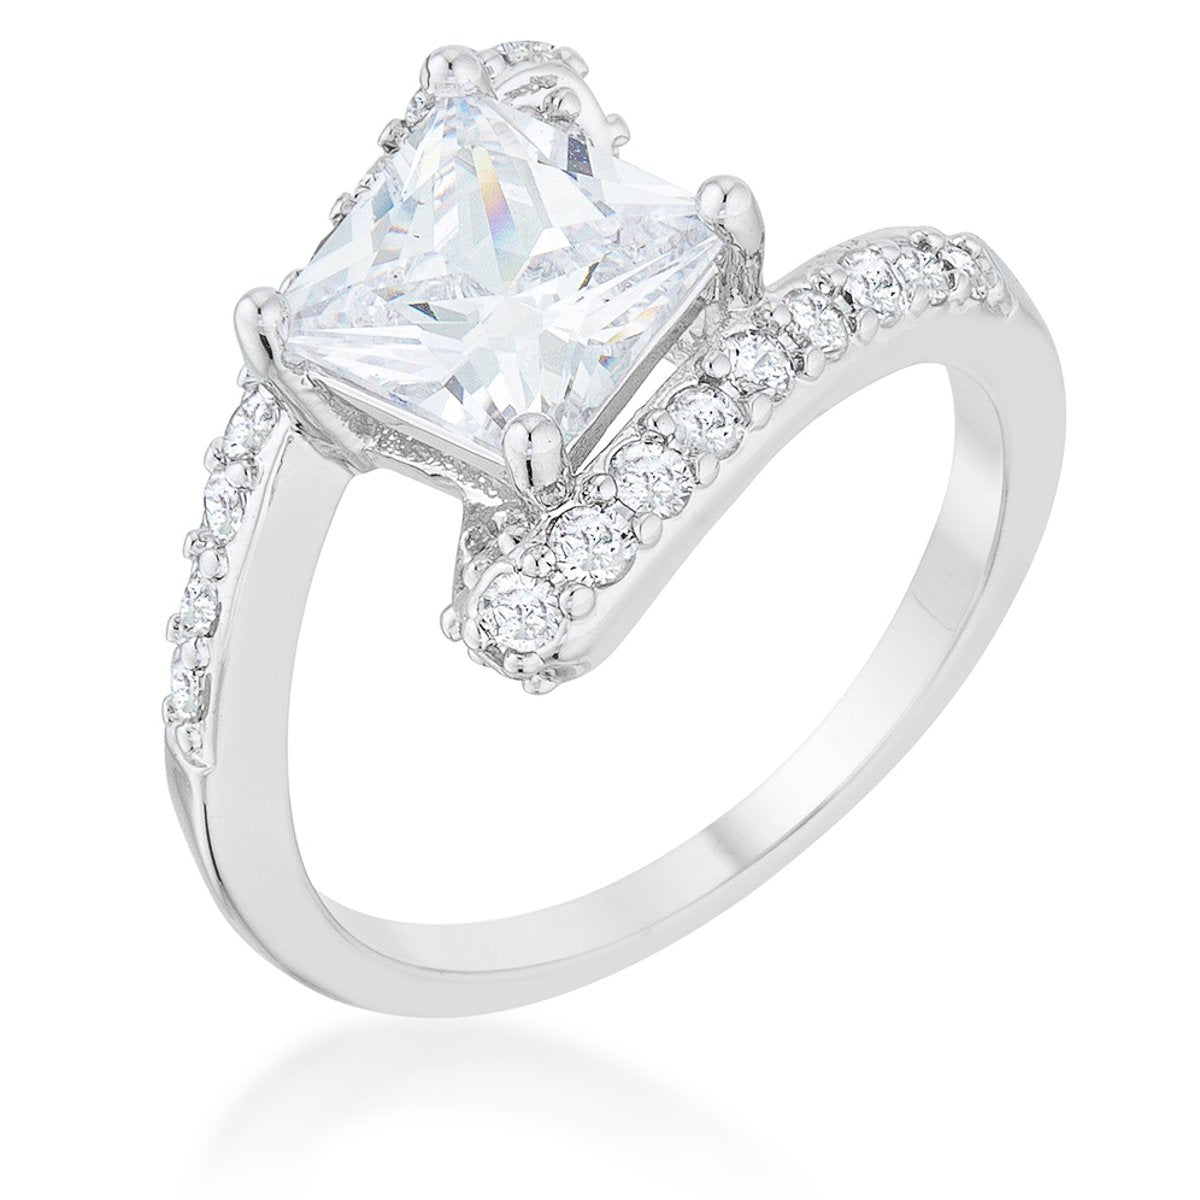 Caroline 2.3ct CZ Rhodium Statement Ring - Rings - KA Designs Online